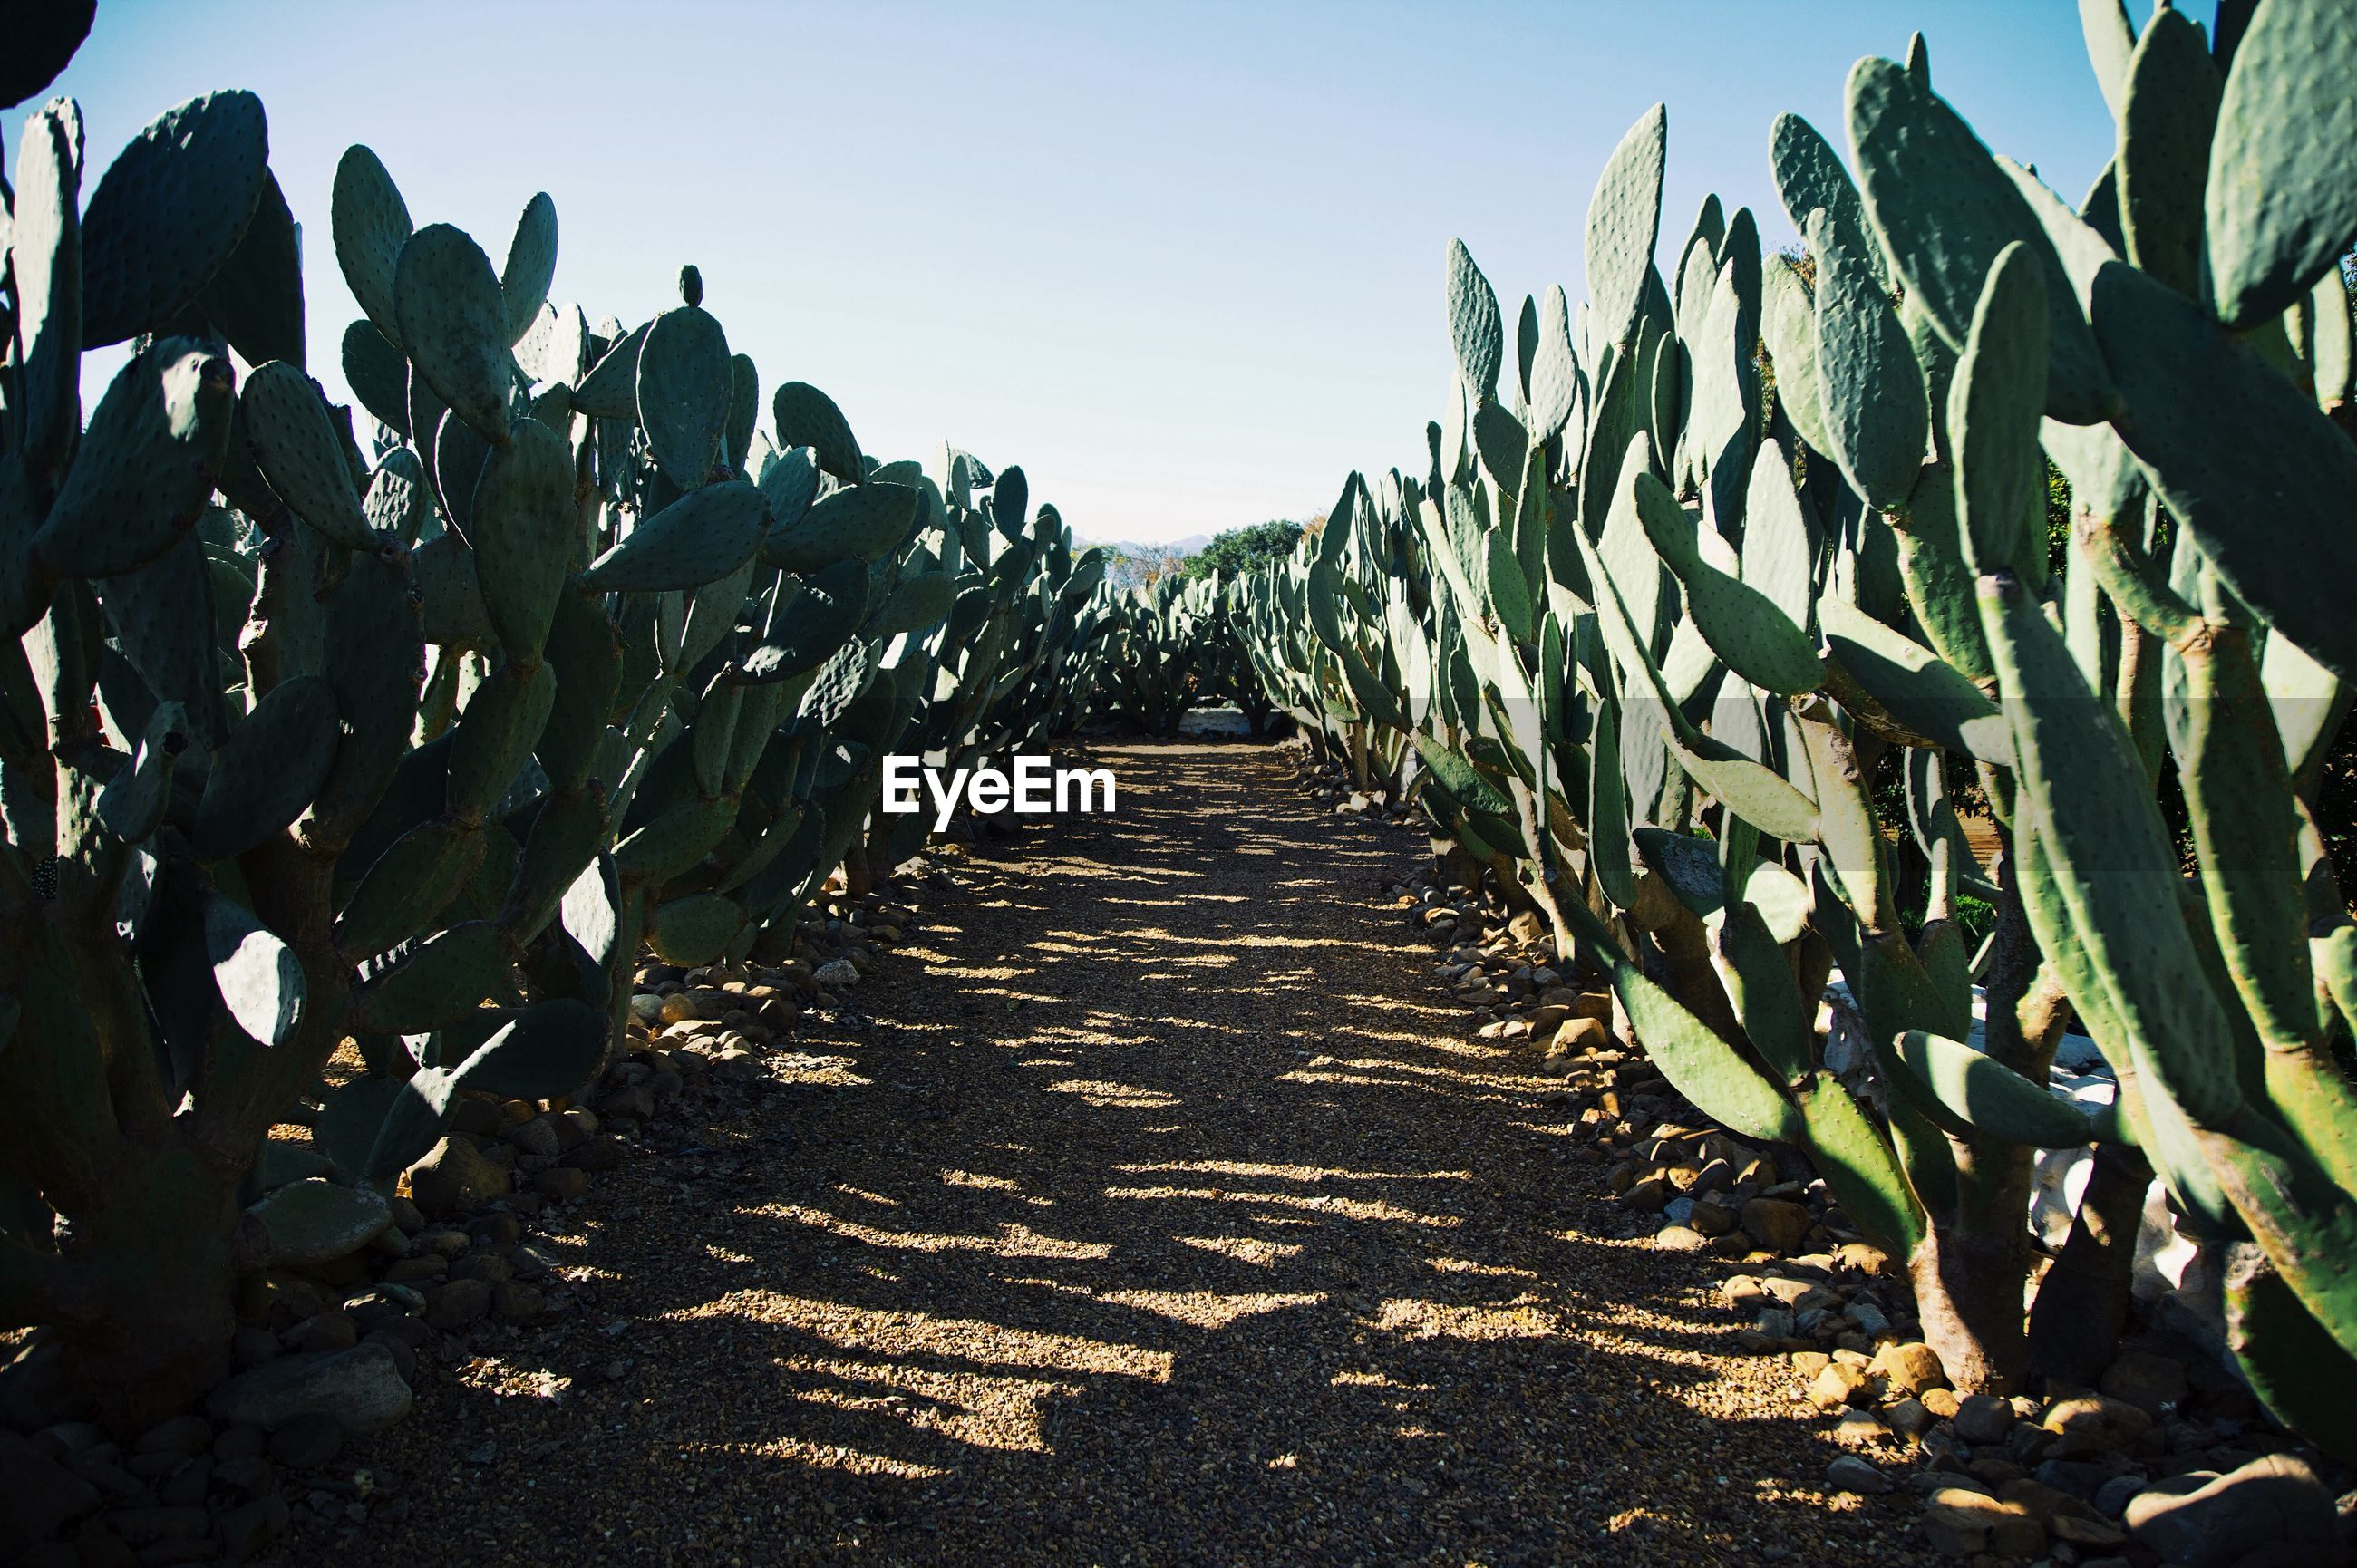 Pathway amidst cactus growing on field